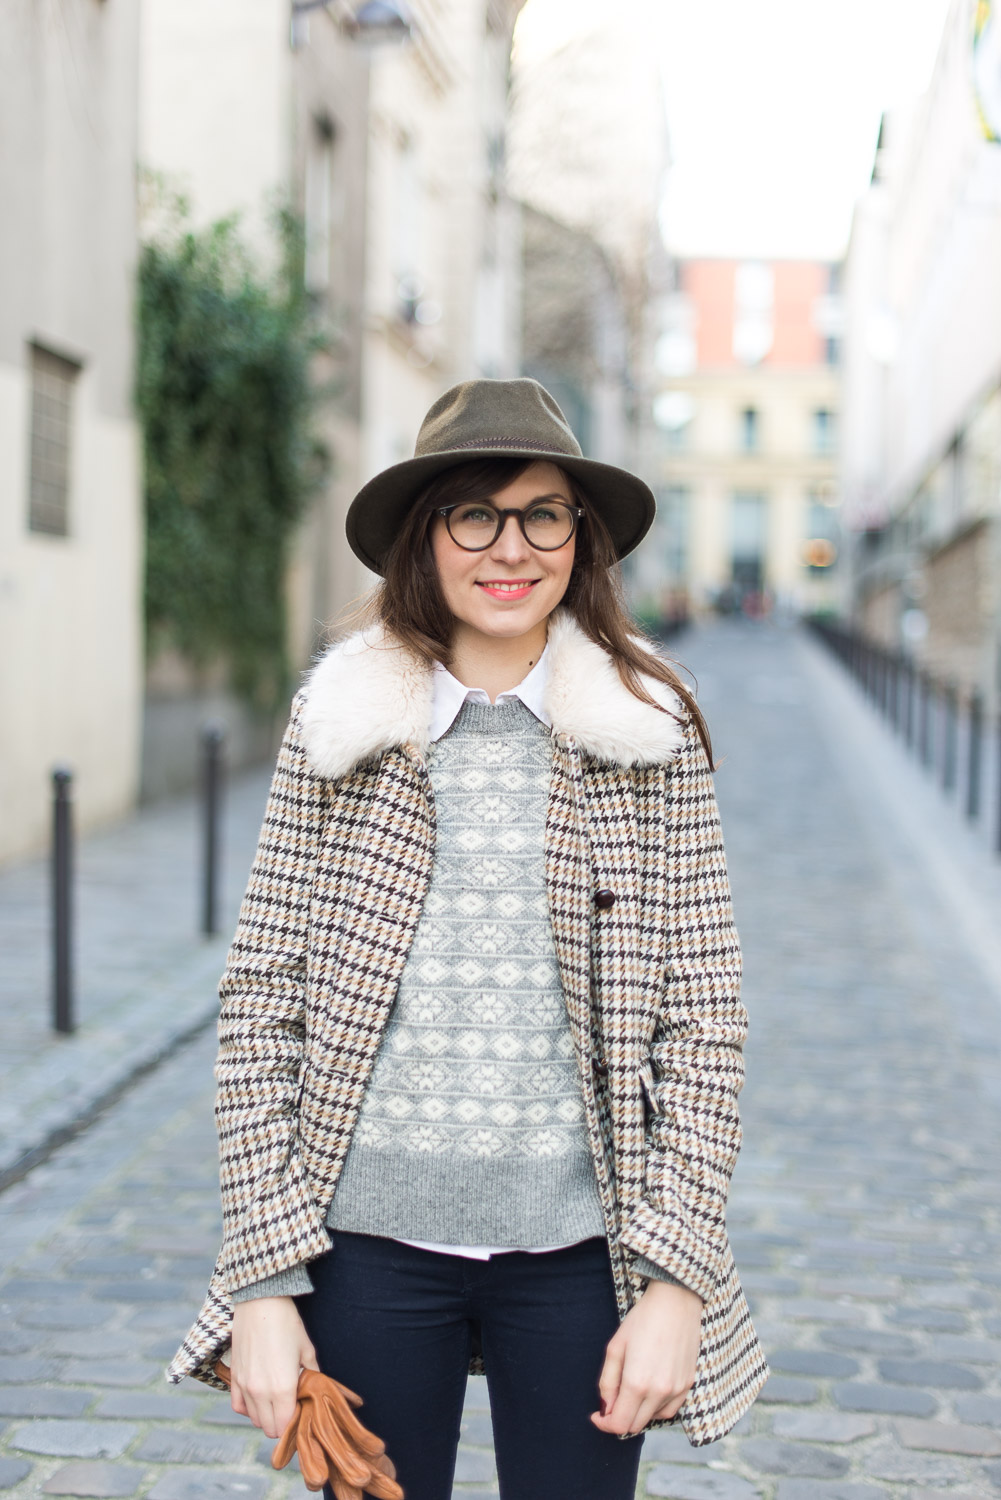 Blog mode et lifestyle Mode And The City - www.modeandthecity.net - Manteau Jack Wills